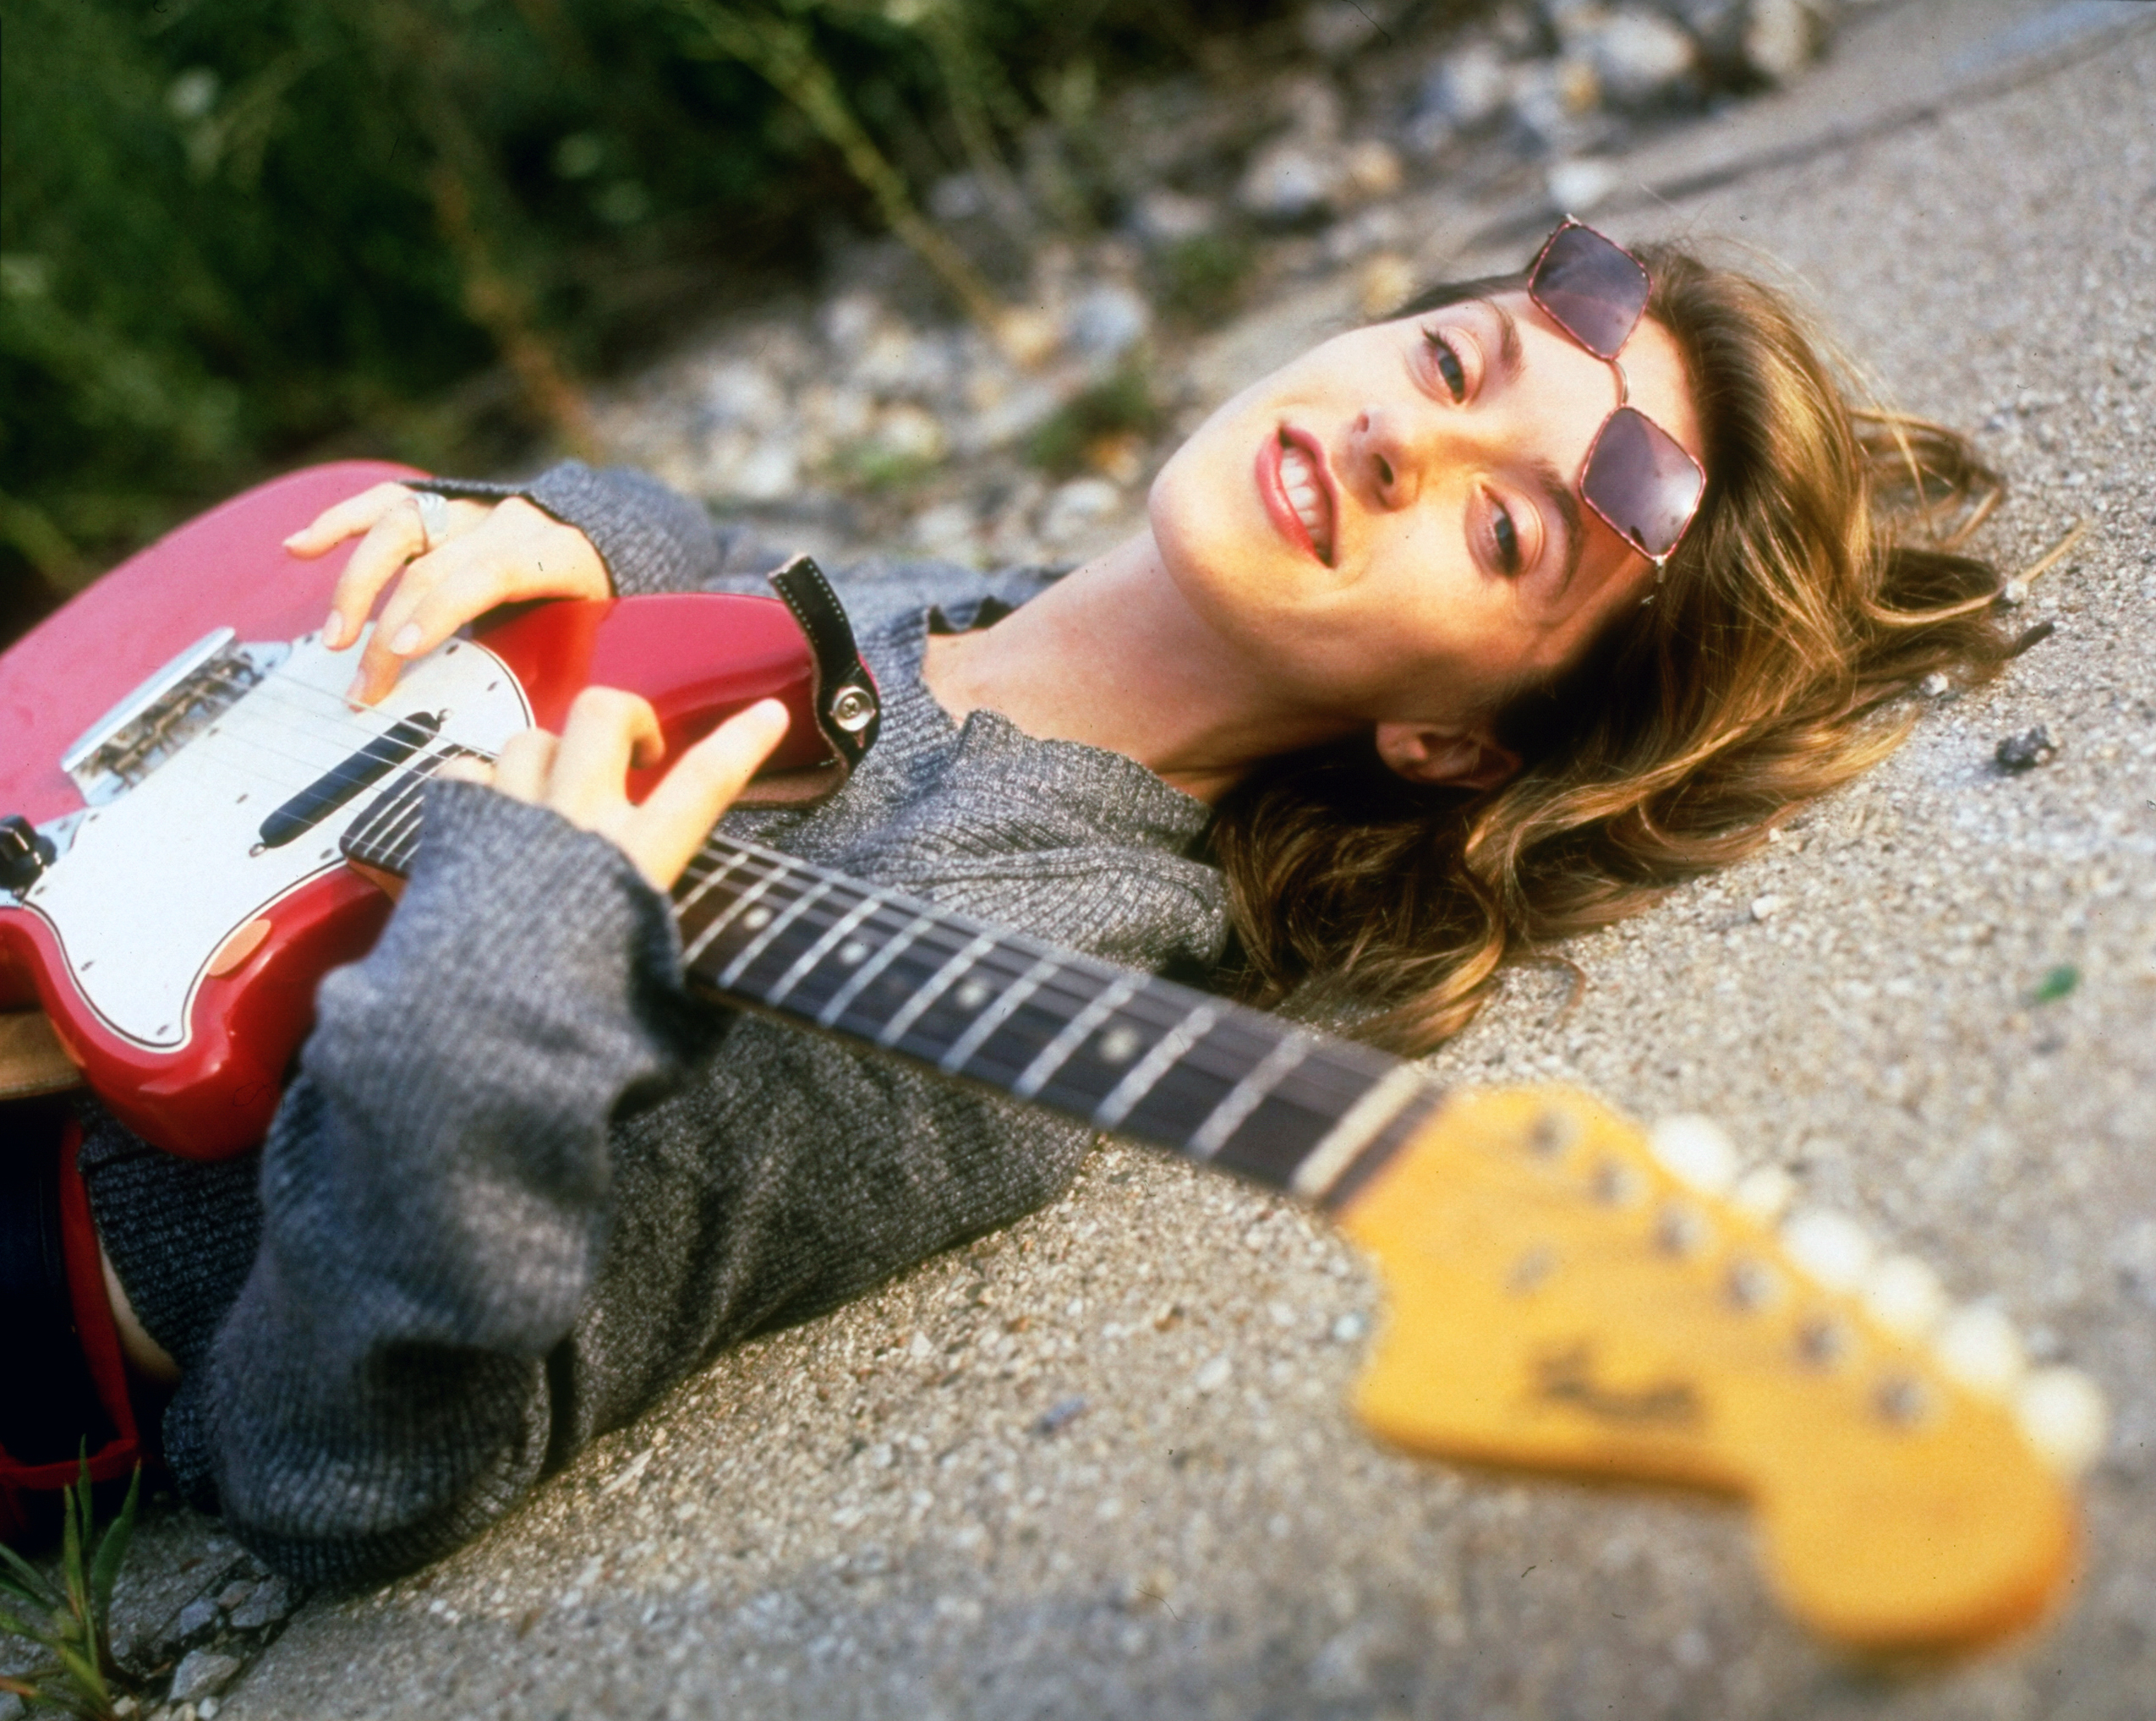 Liz Phair Breaks Down 'Exile in Guyville,' Track by Track ...